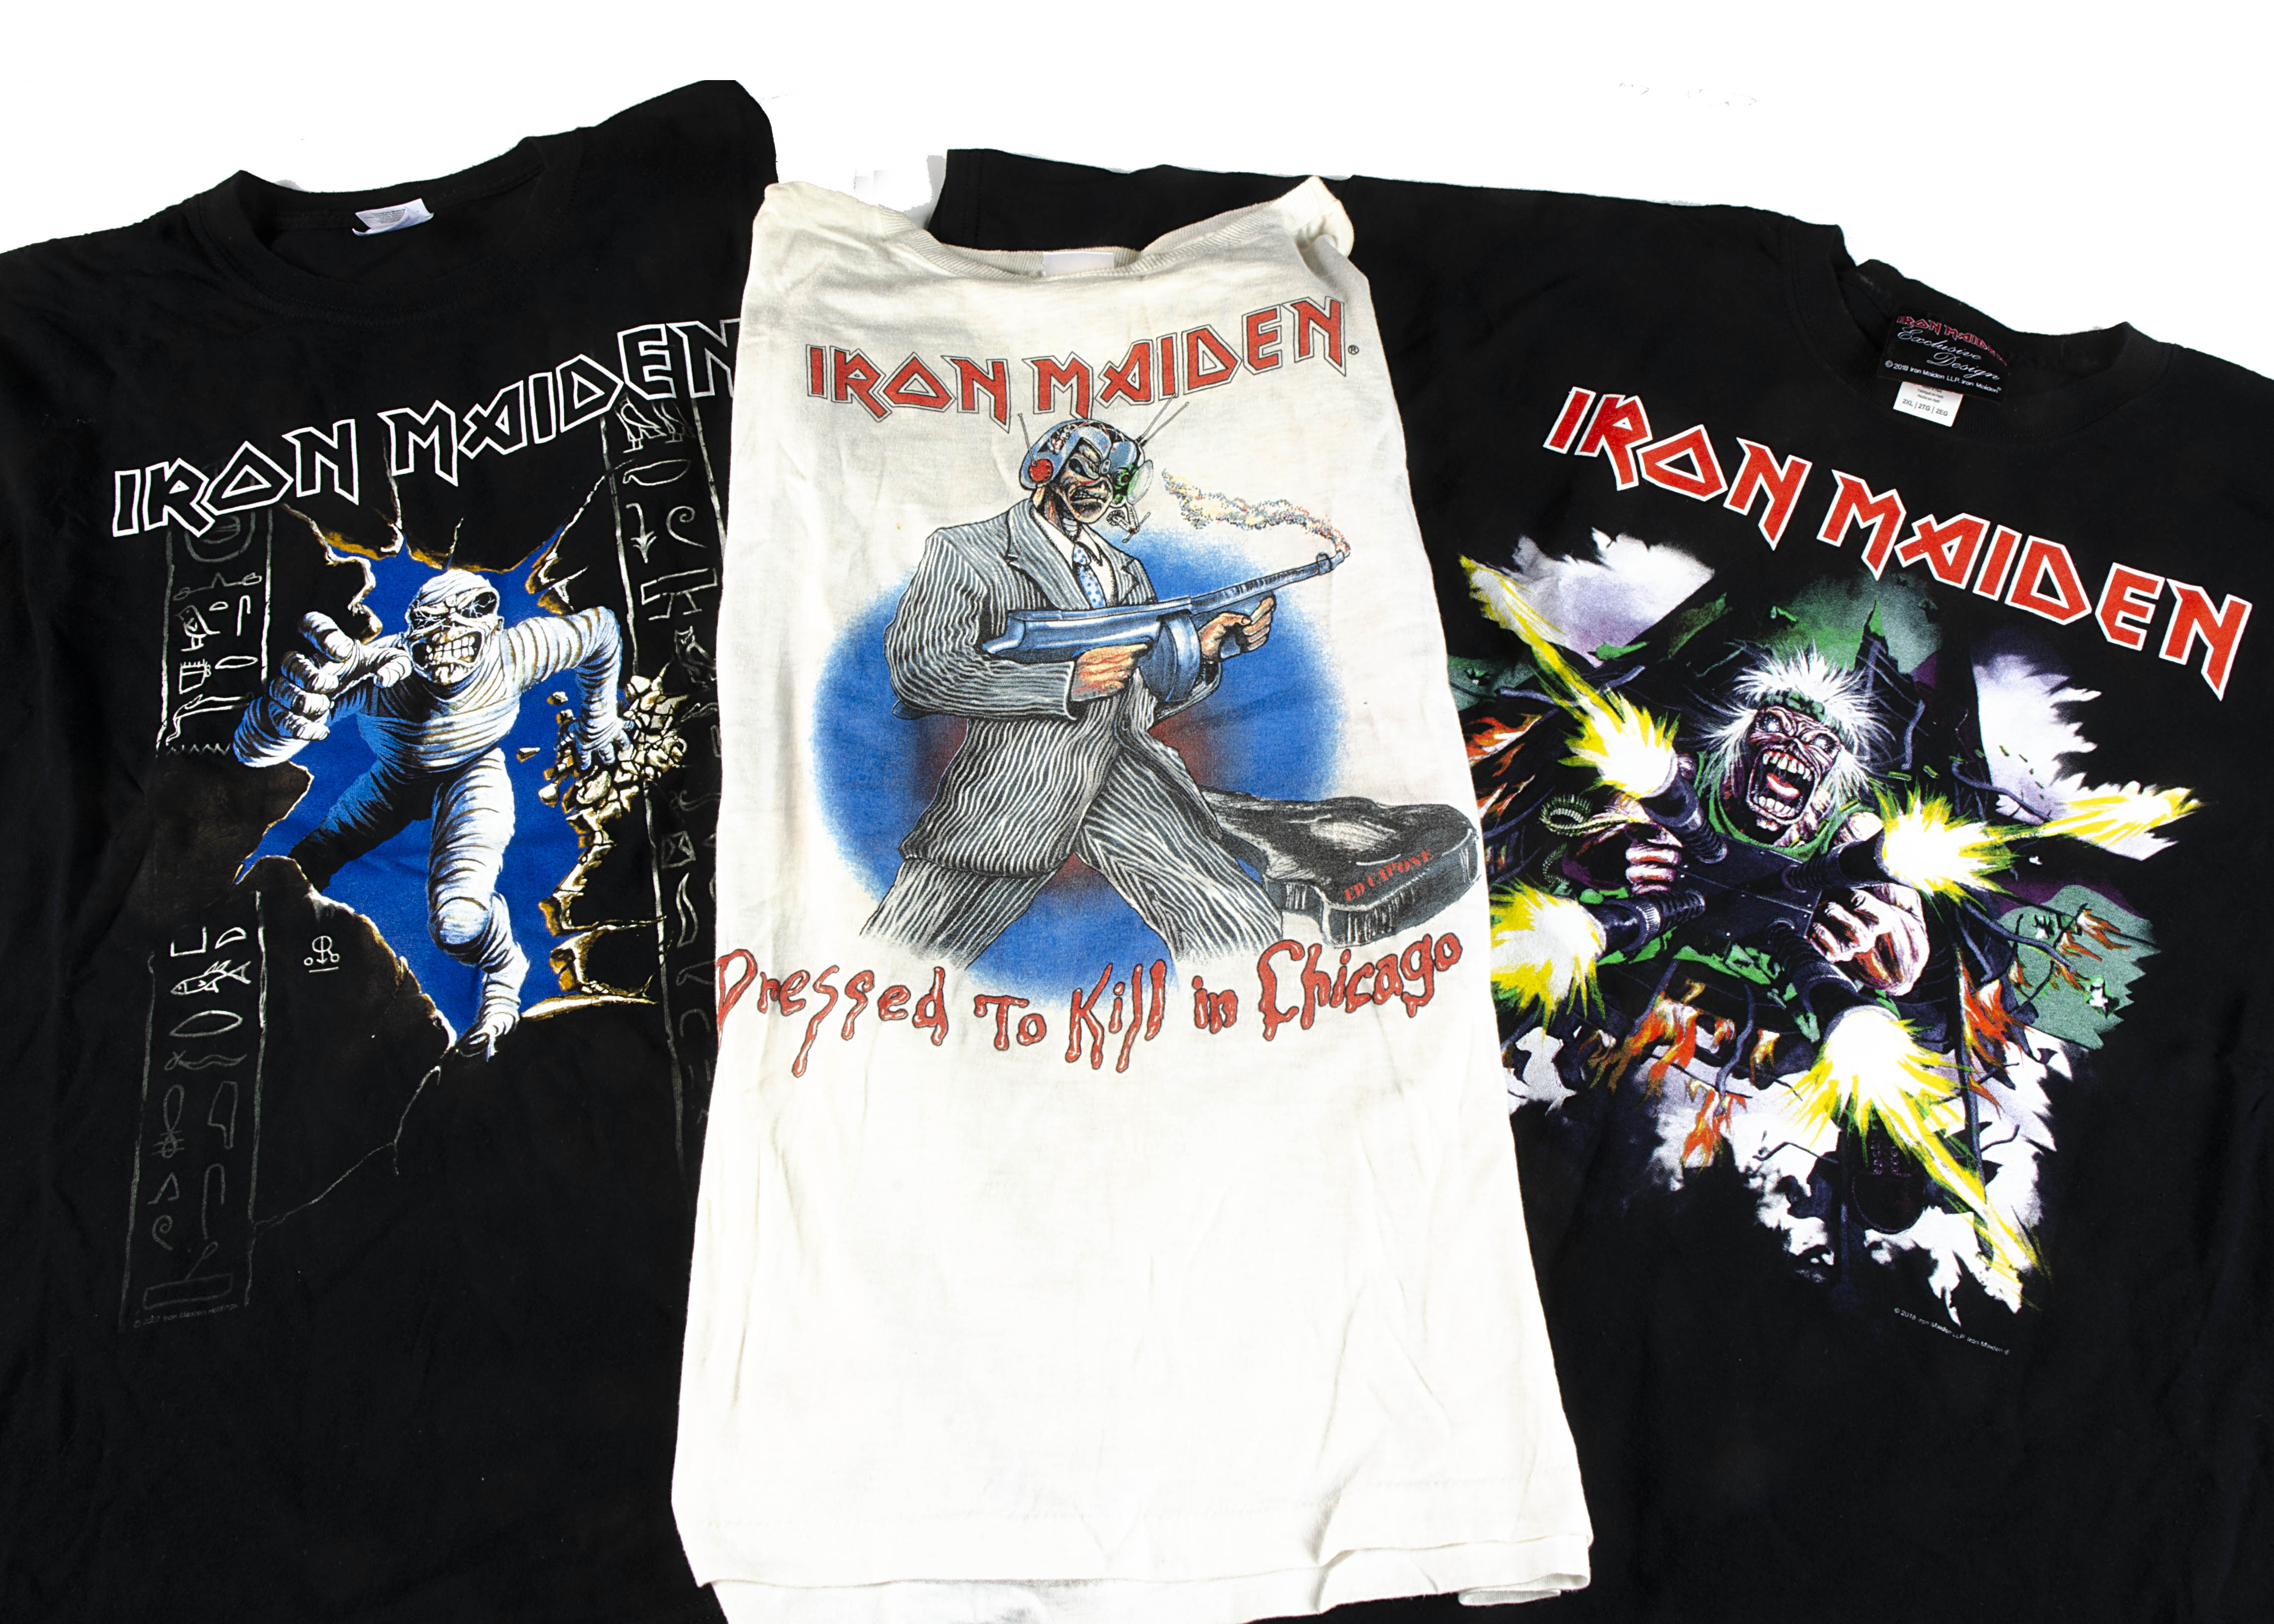 Iron Maiden 'T' Shirts, five Iron Maiden 'T' shirts - 2 X dressed to Kill in Chicago XL & M (used